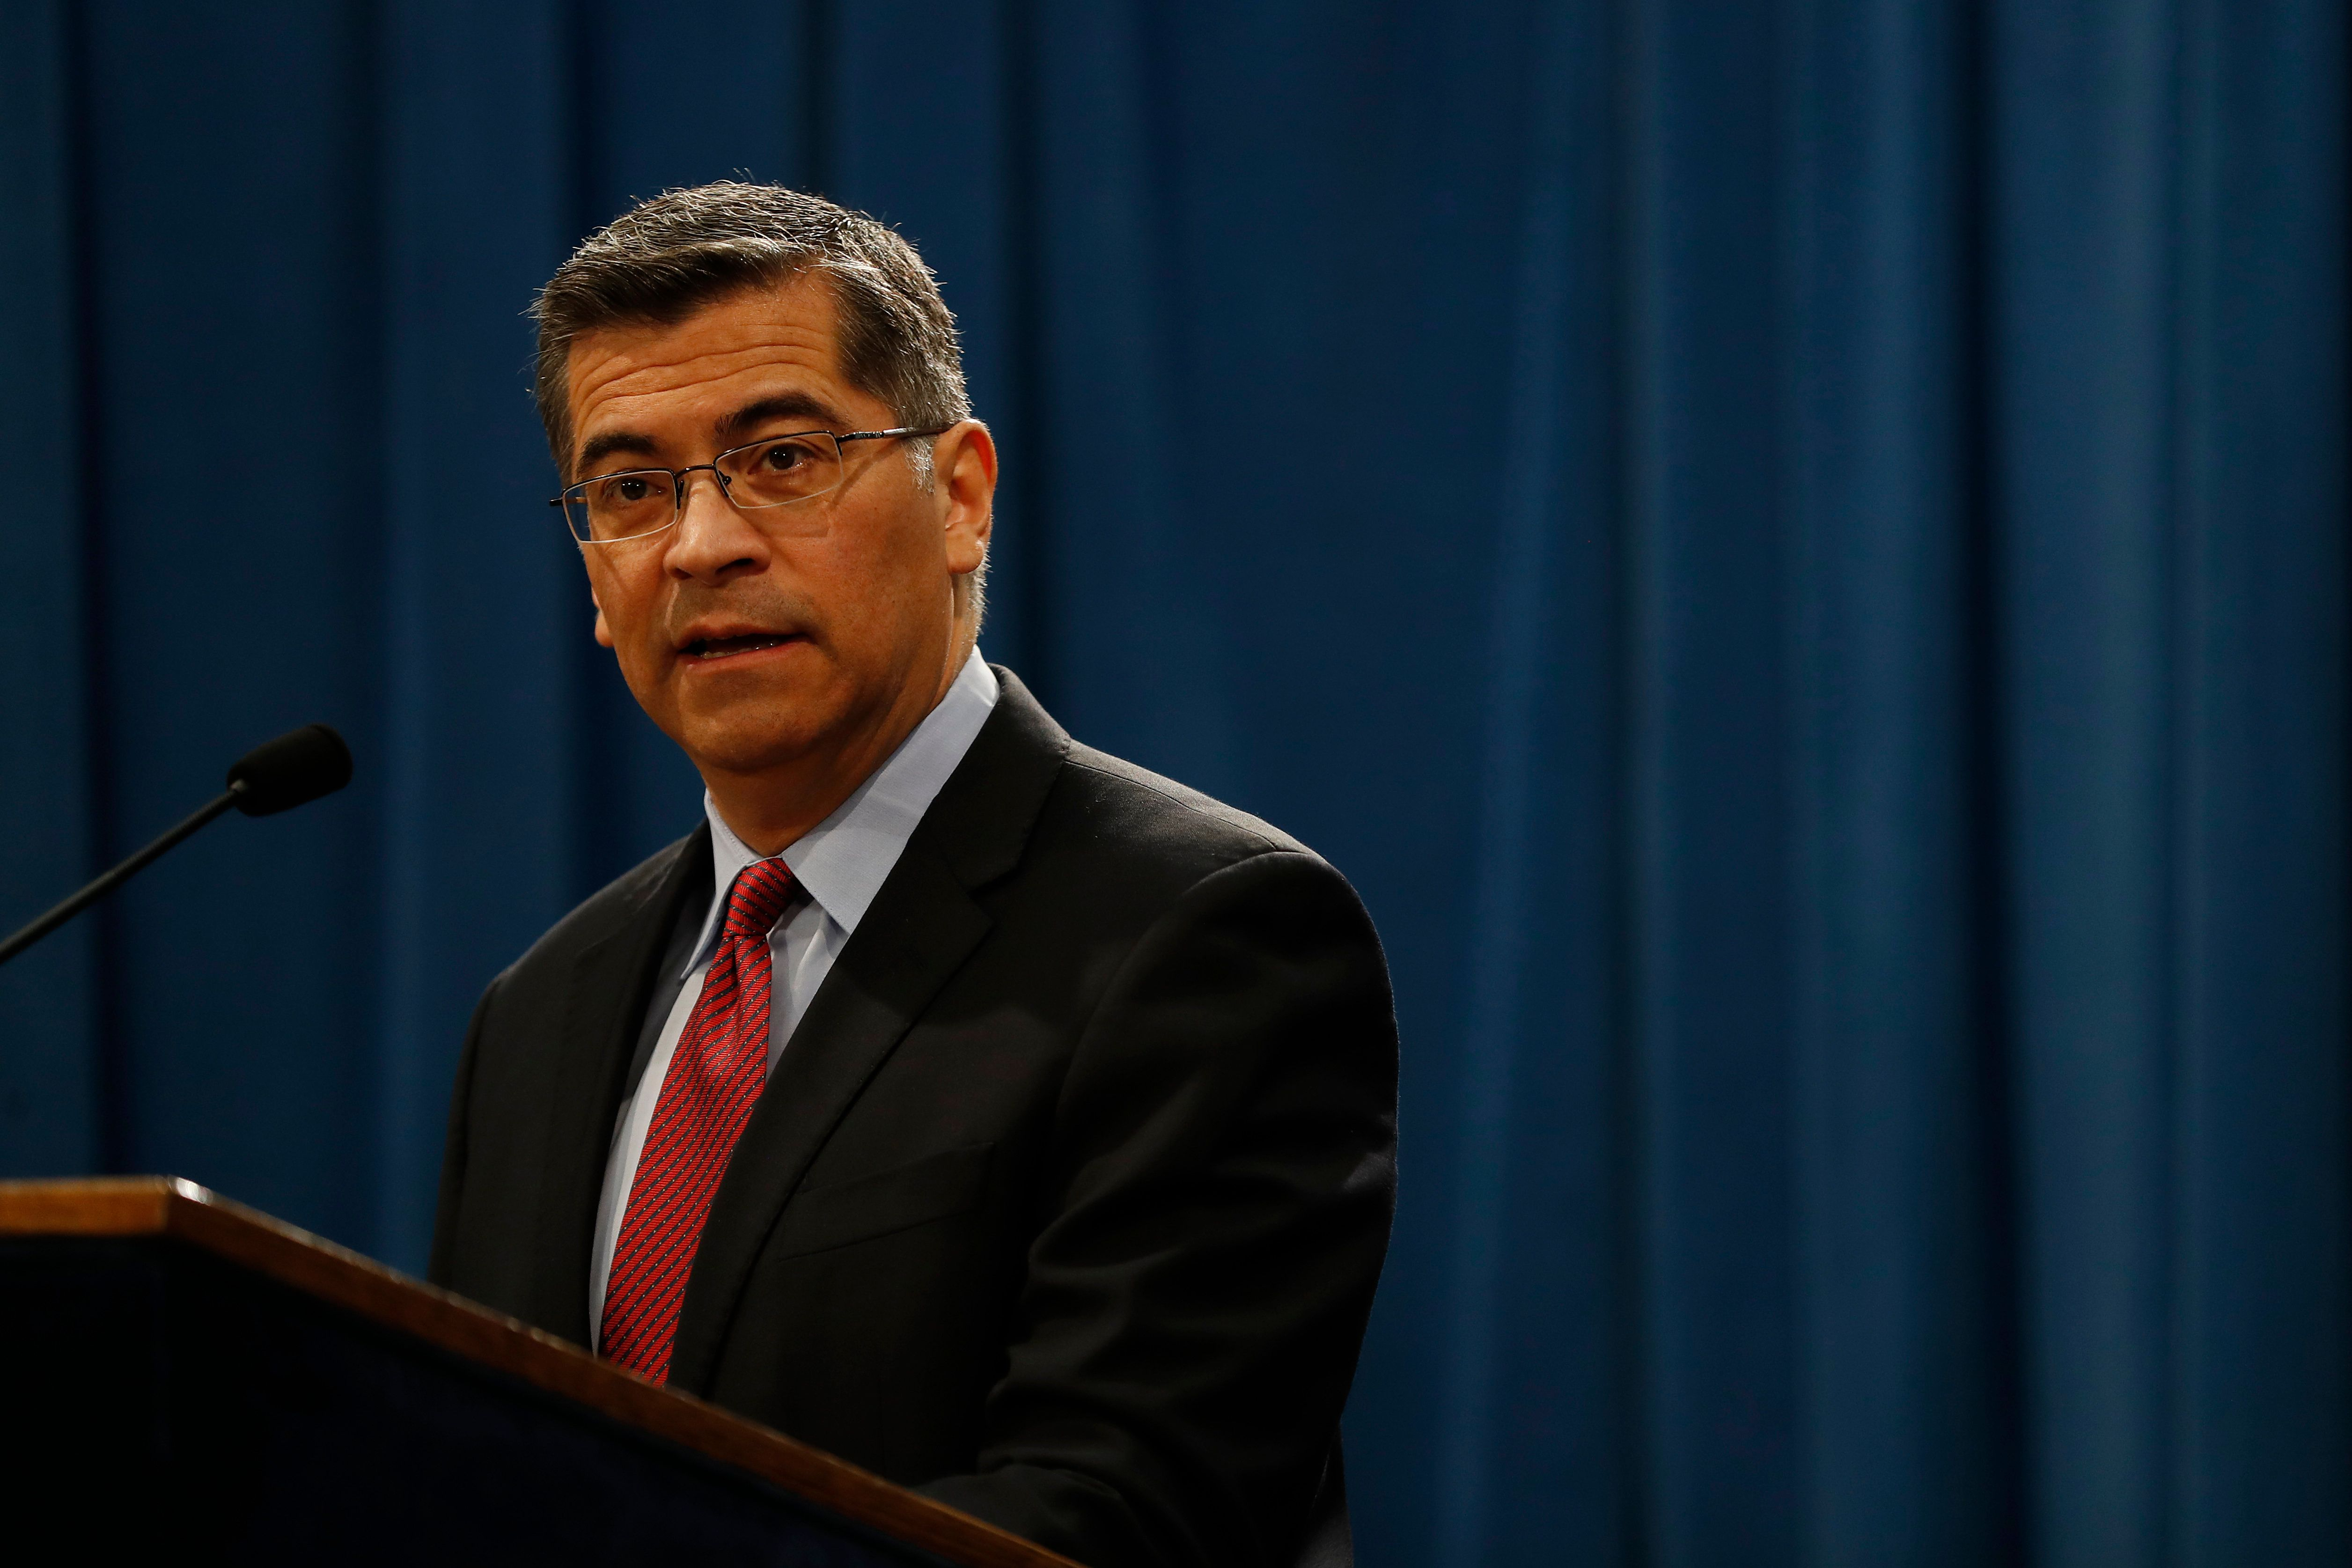 SACRAMENTO, CA - MARCH 07: California Attorney General Xavier Becerra speaks during a press conference at the California State Capitol on March 7, 2018 in Sacramento, California. The press conference came in response to an earlier speech by U.S. Attorney General Jeff Sessions at a nearby hotel and the Justice Department's decision to sue the State of California over its controversial sanctuary policies for undocumented immigrants. (Photo by Stephen Lam/Getty Images)